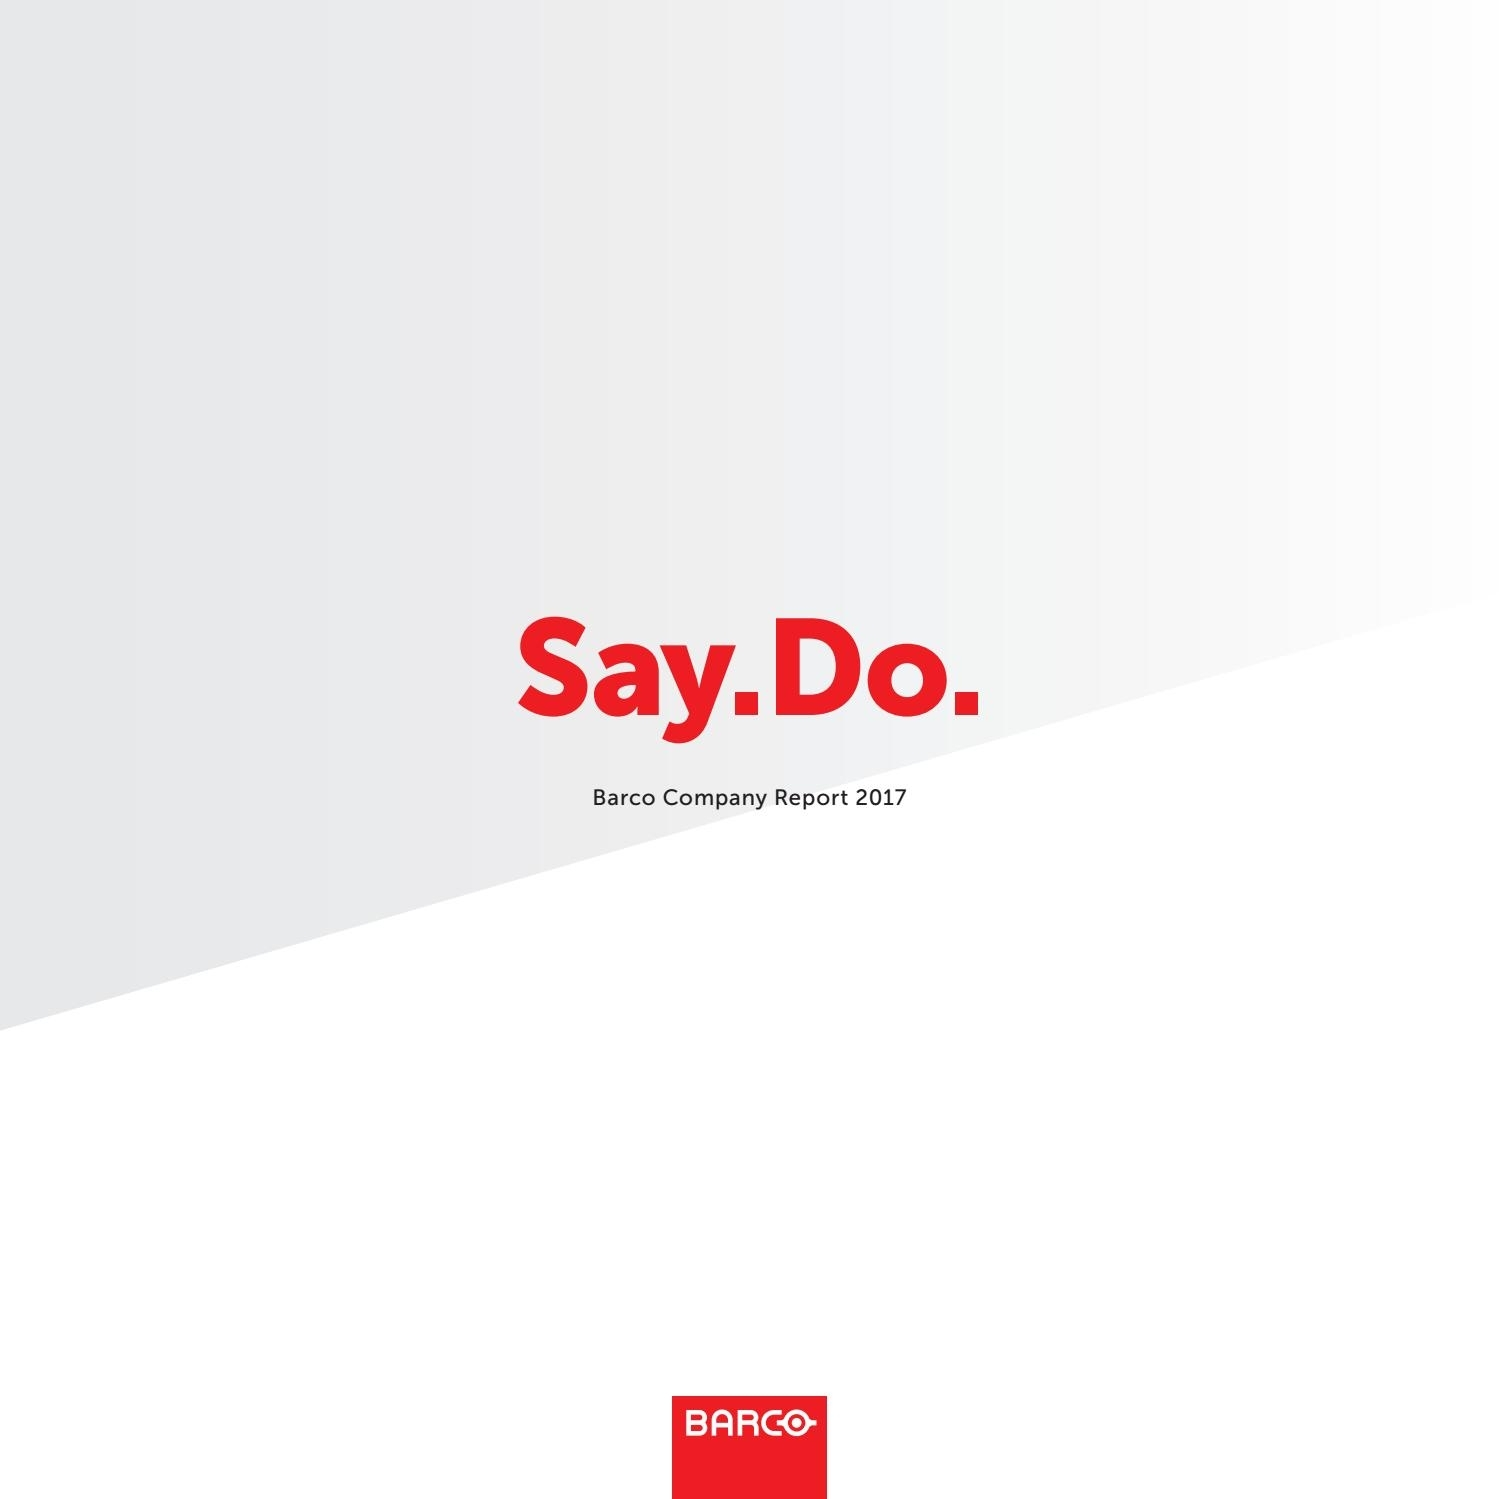 Barco Annual Report 2017Barco - Issuu